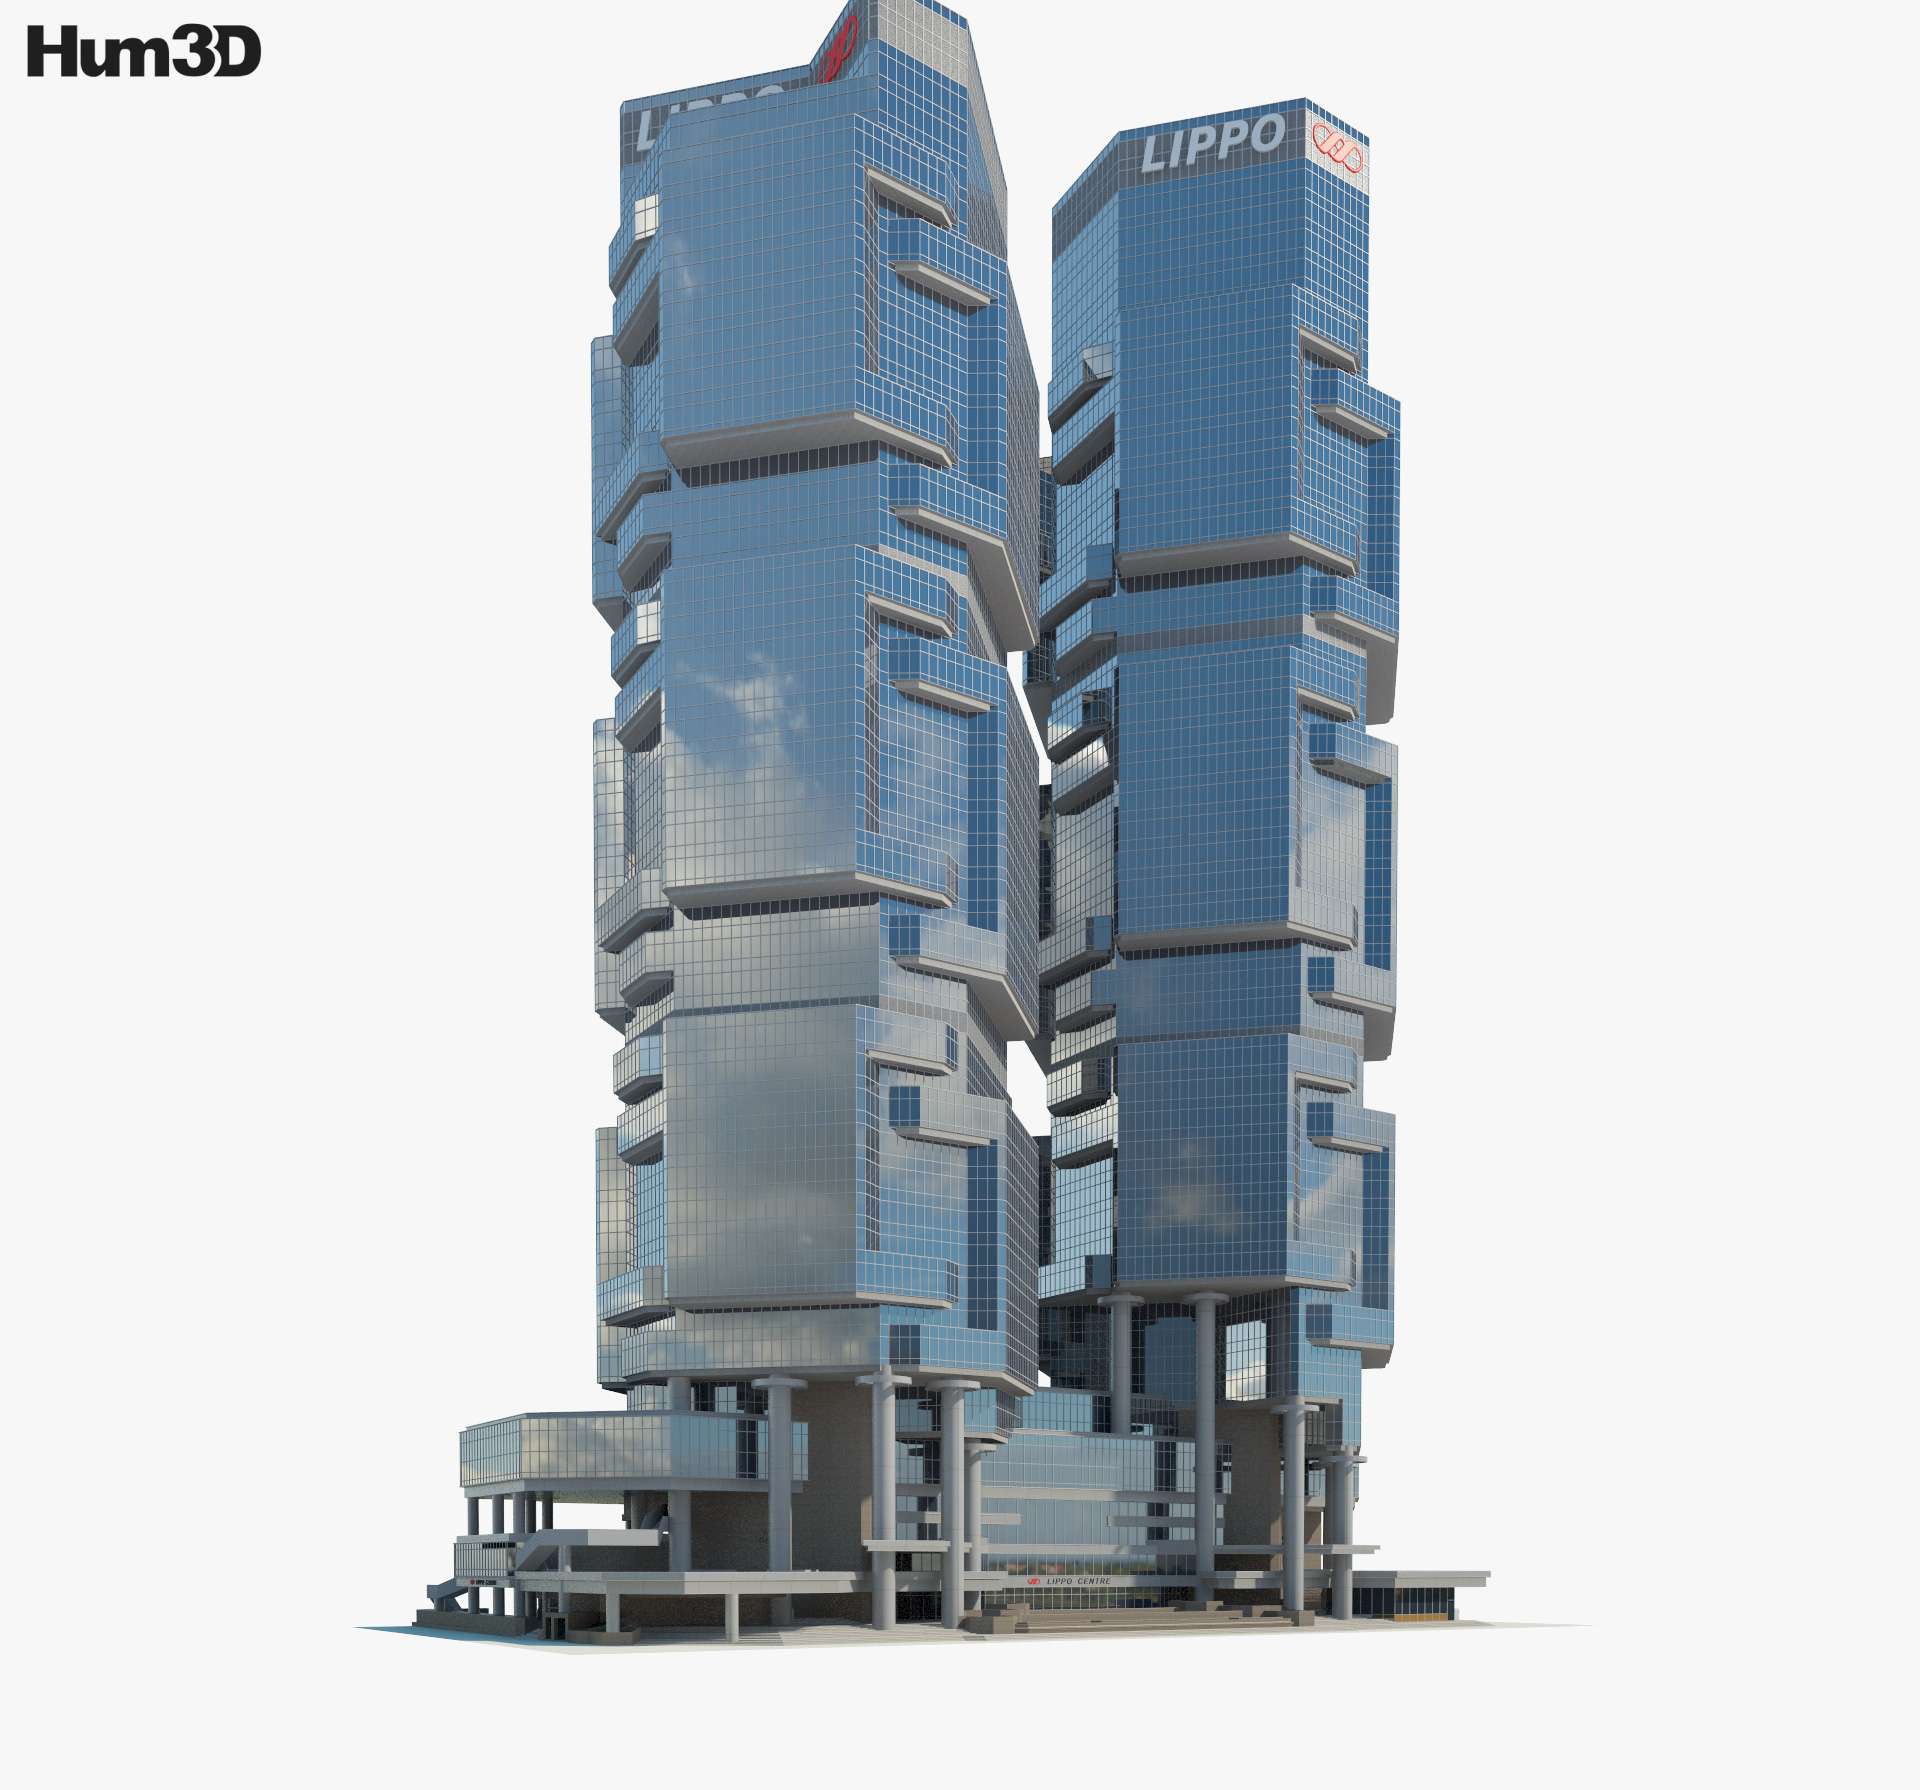 3D model of Lippo Centre